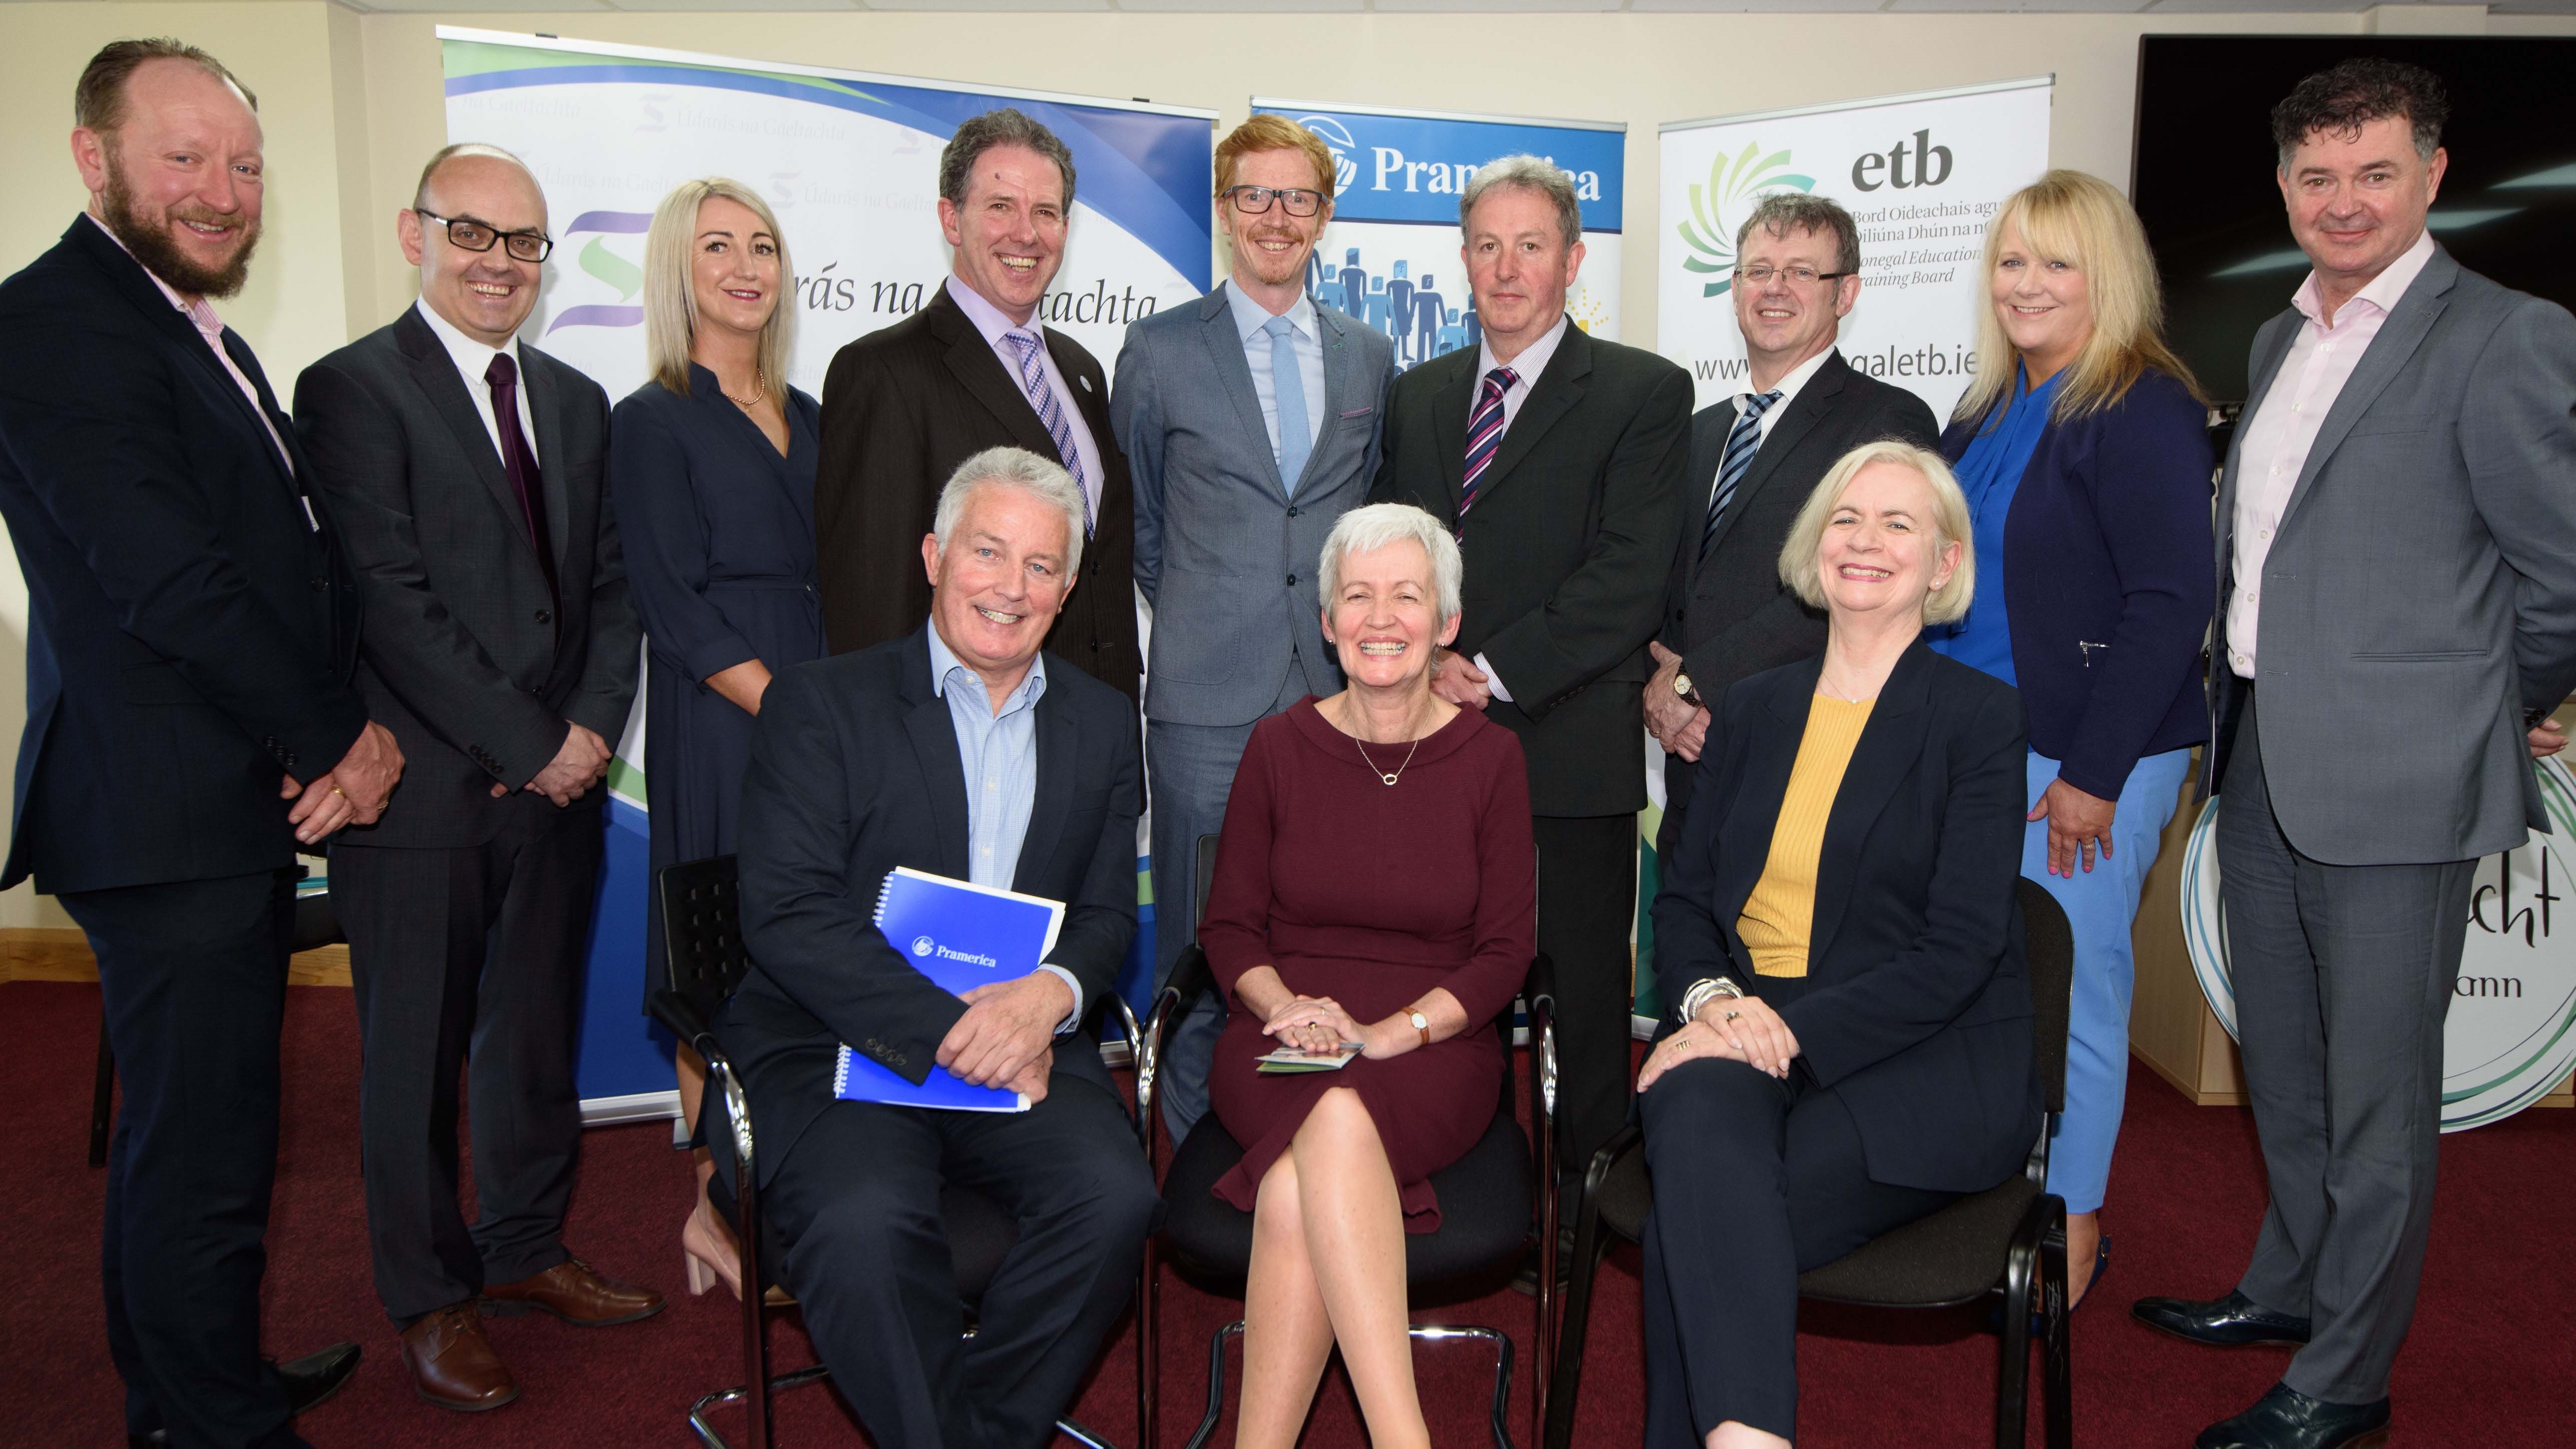 Donegal ETB Launches New Automated Software Testing Traineeship in gteic